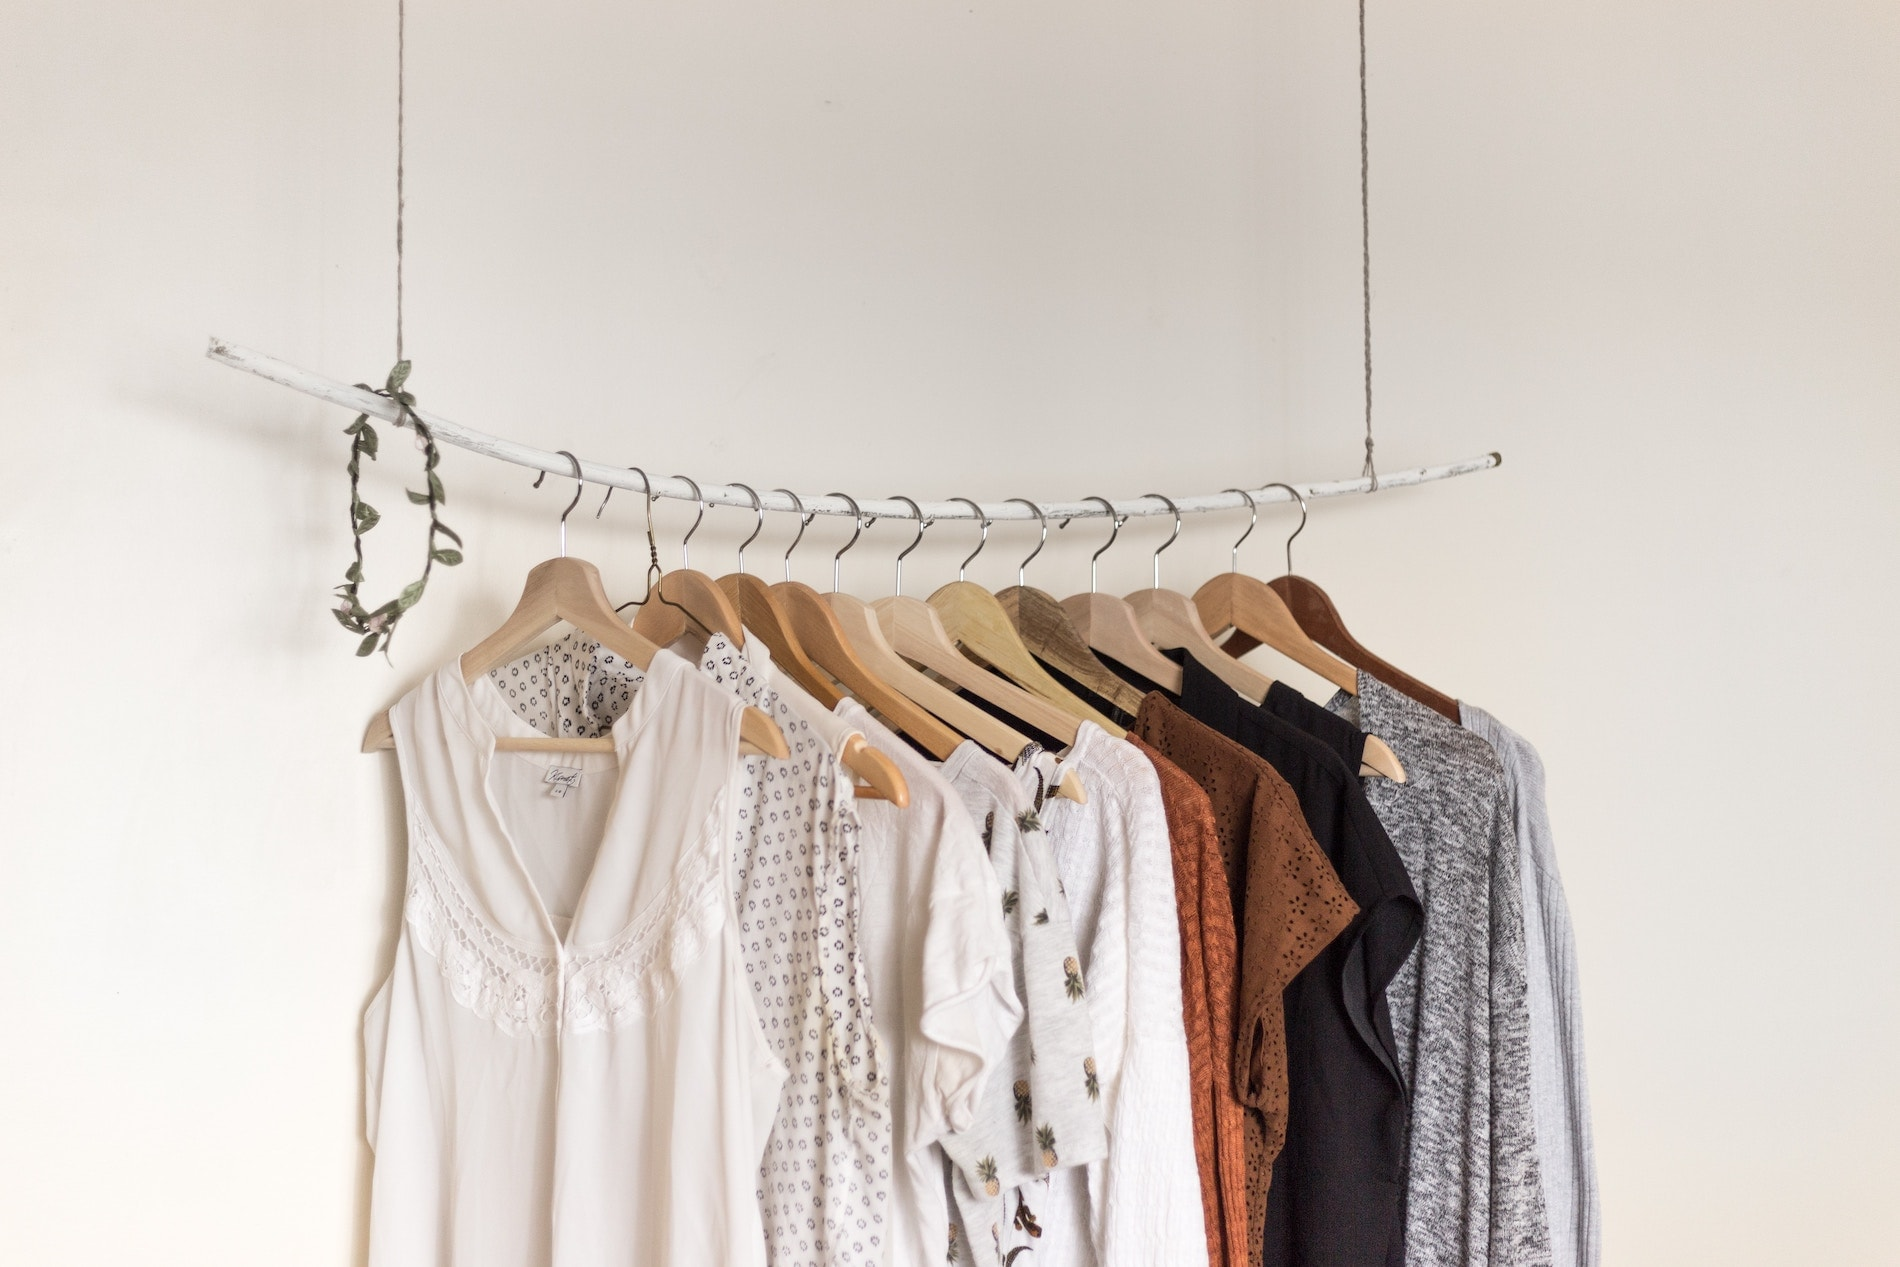 Capsule rack of garments hanging on a white wall